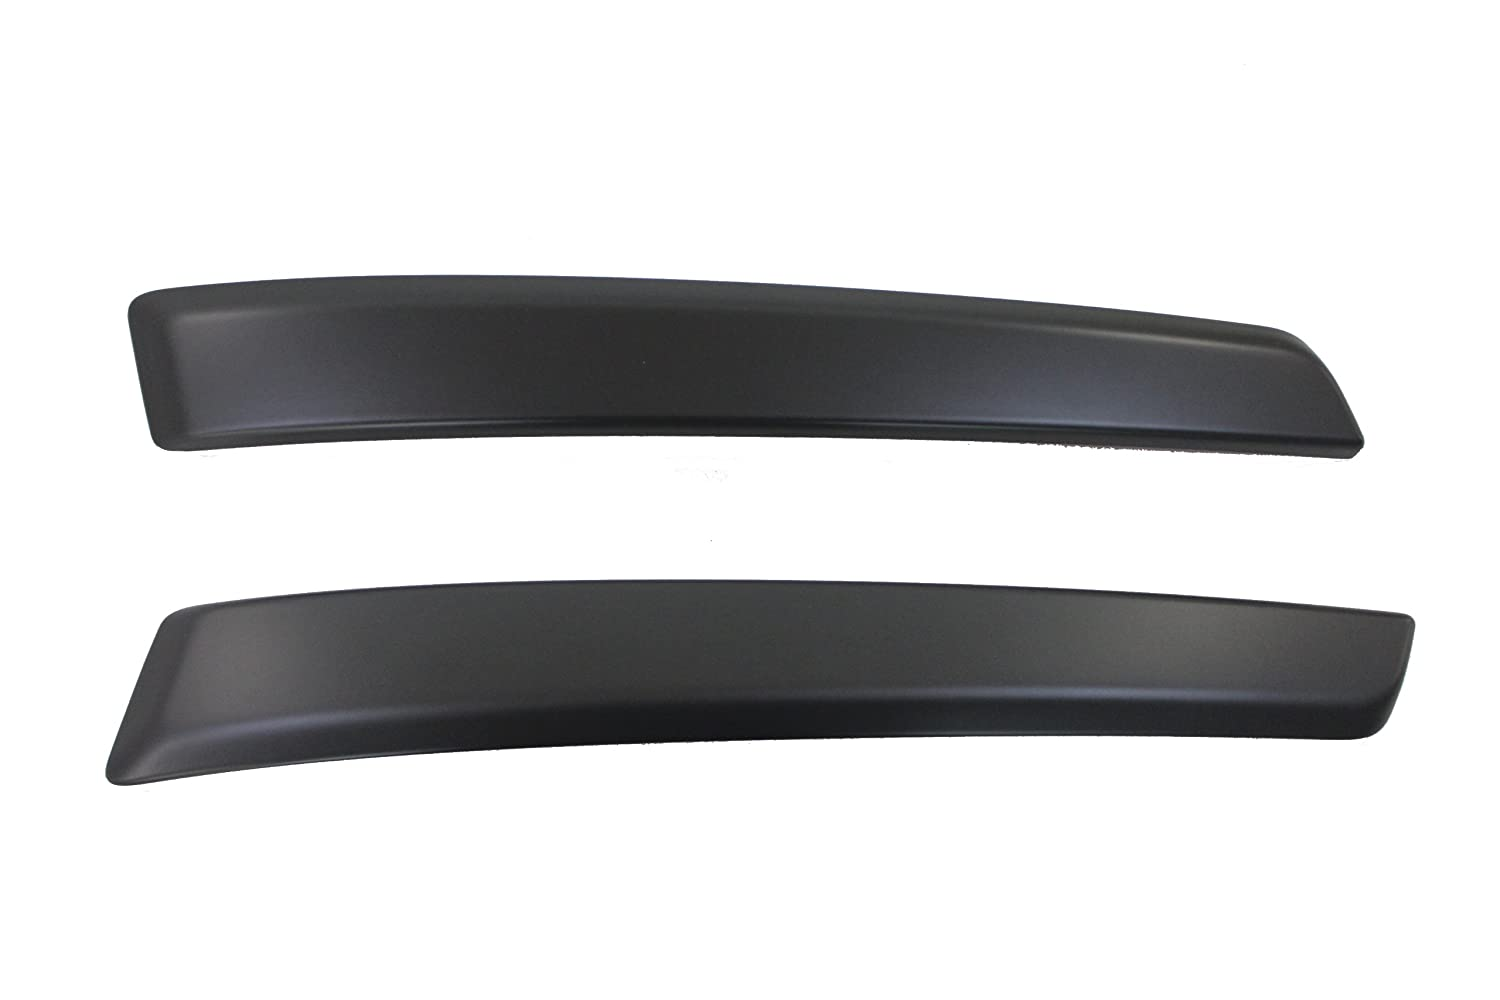 Audi Genuine Accessories 4L0071067 Front Protection Strip for Q7